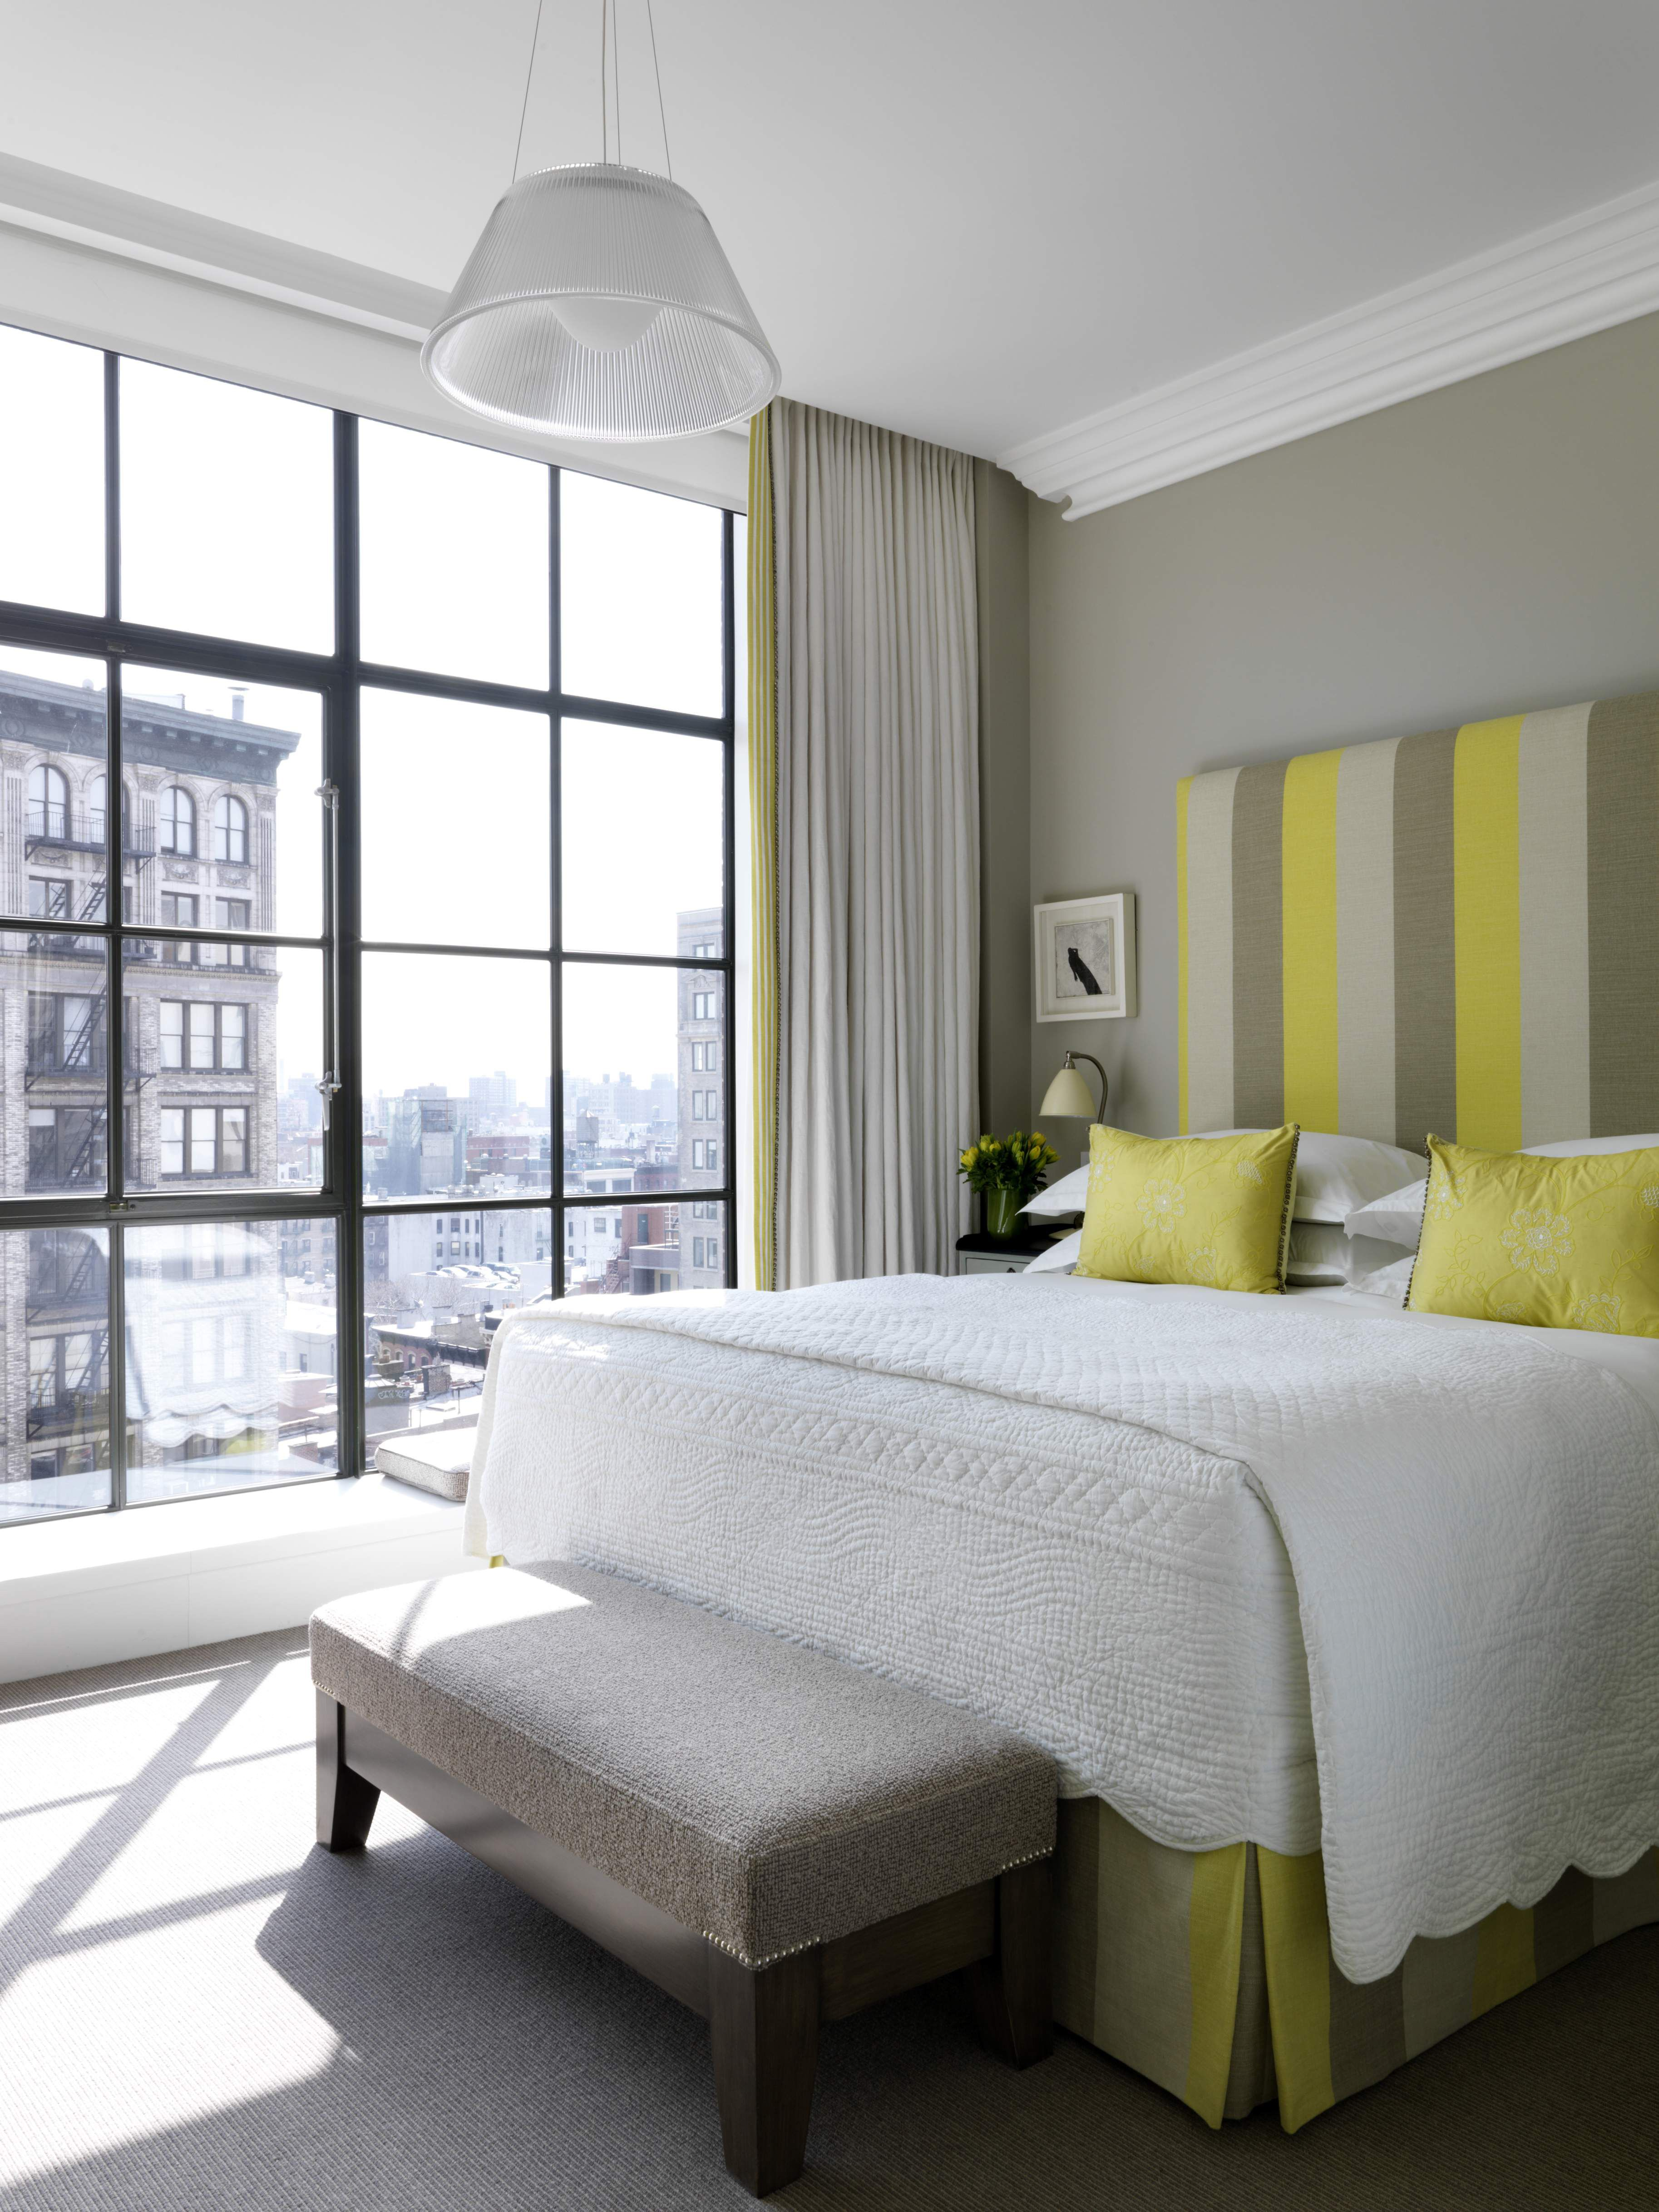 Interior home design bedroom ideas crosby street hotel nyc with interior design by kit kemp  country